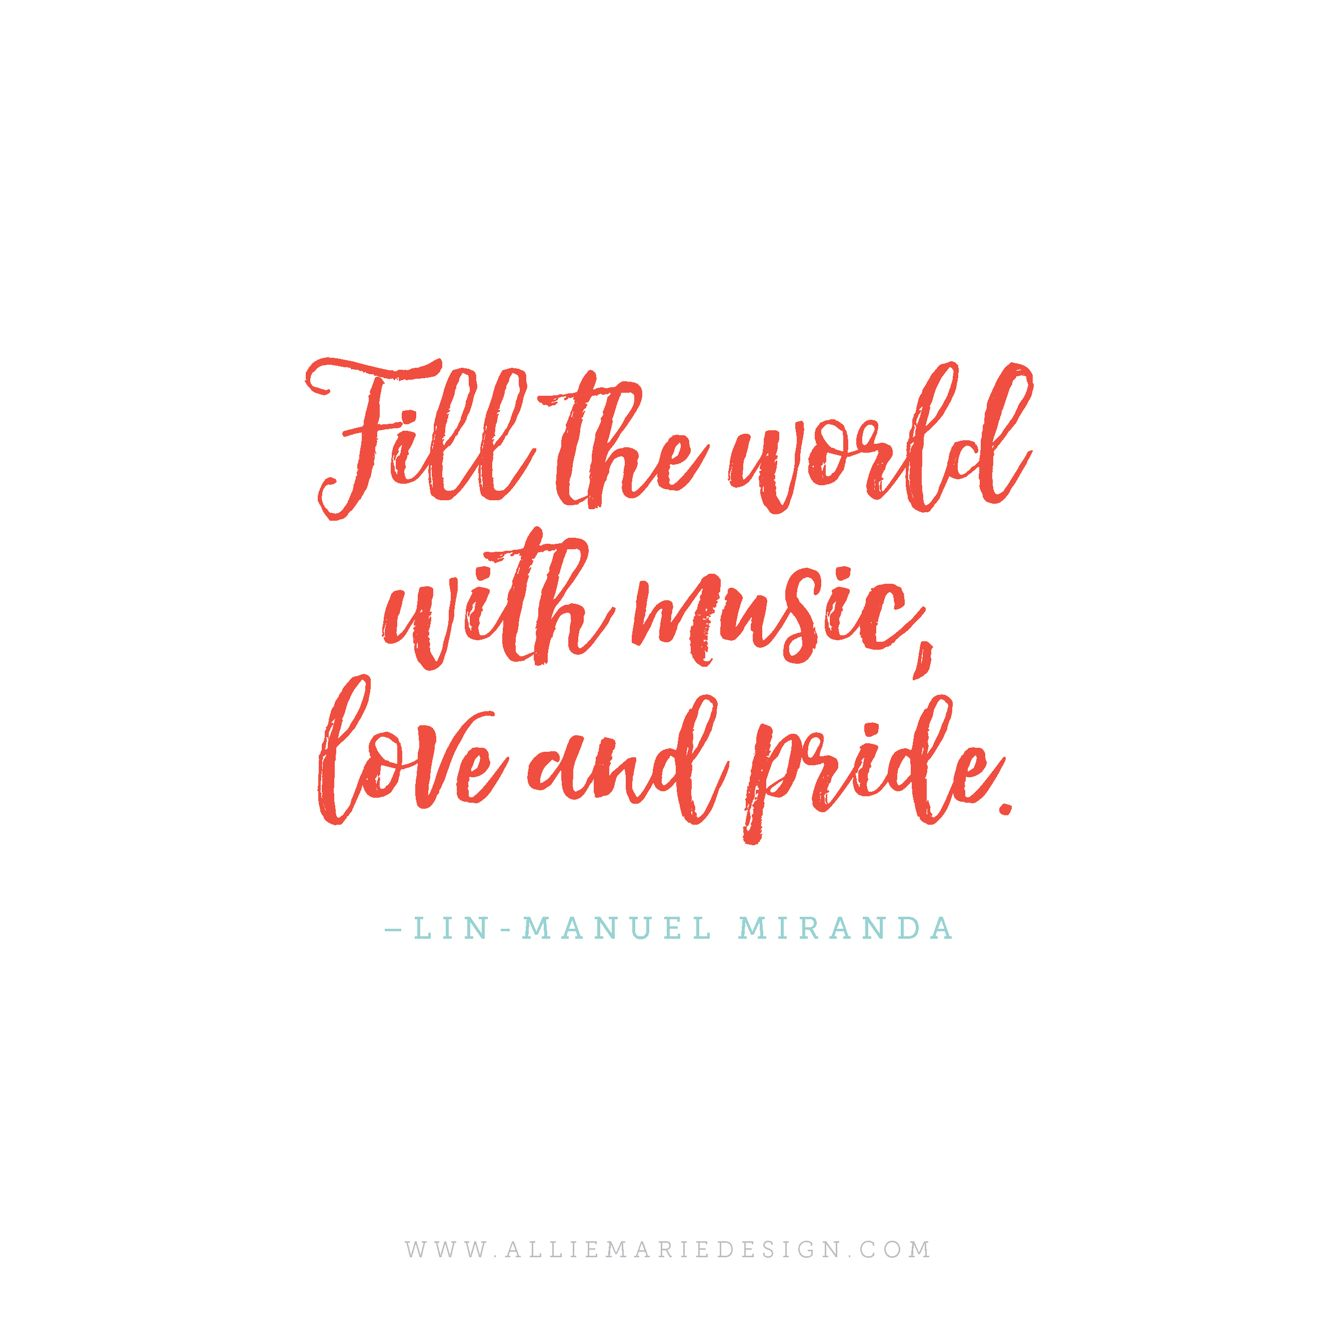 Love And Pride Quotes Sayings: Fill The World With Music, Love And Pride.